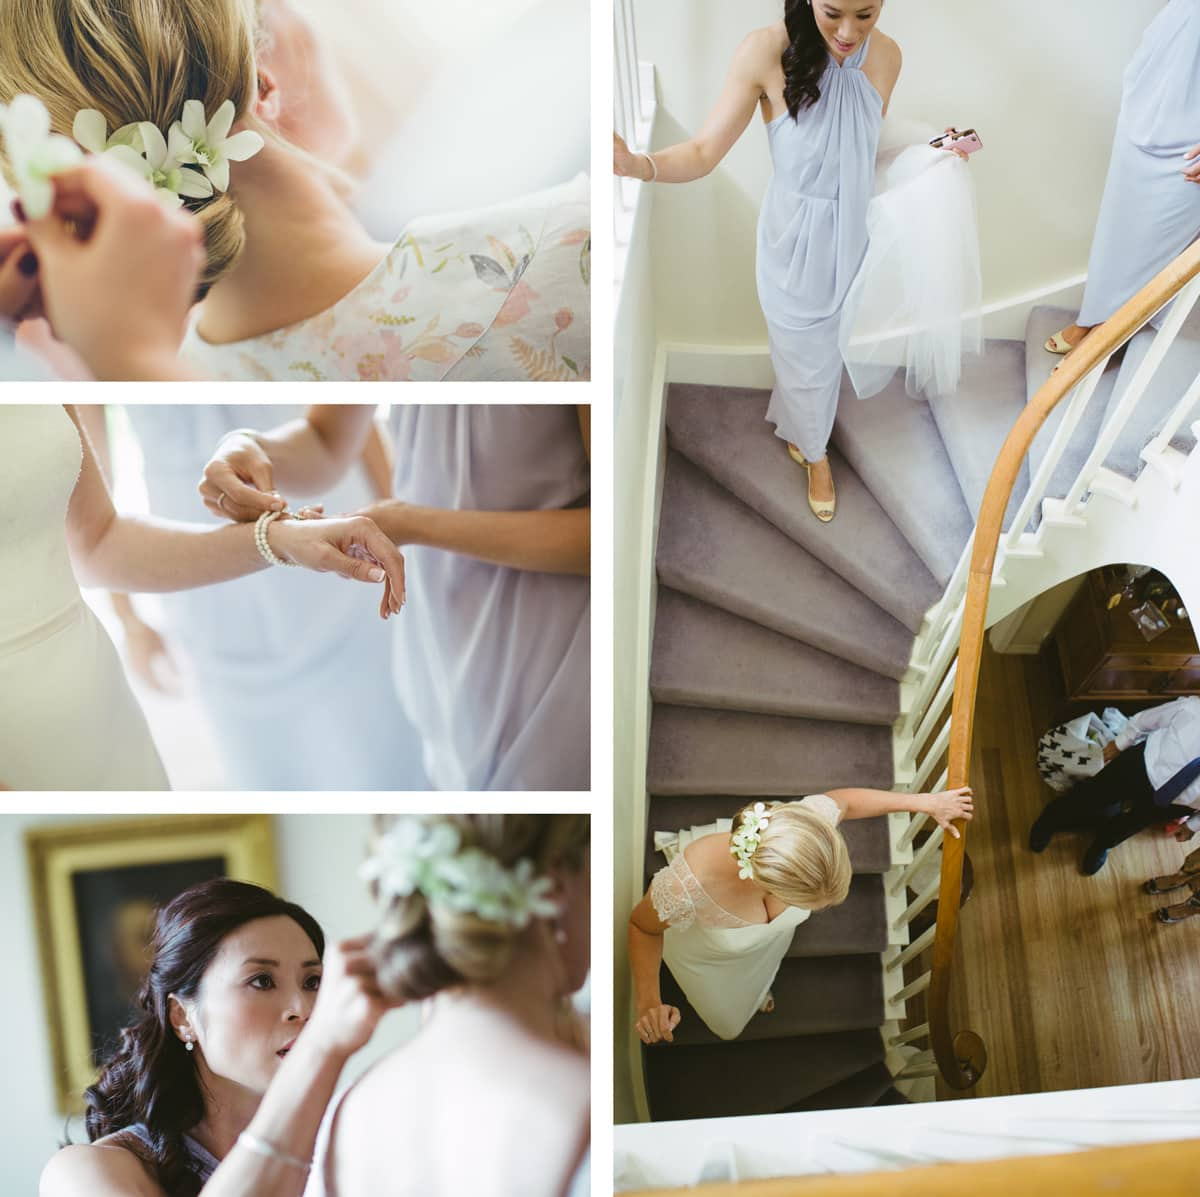 preparation in the morning - bride gets dressed